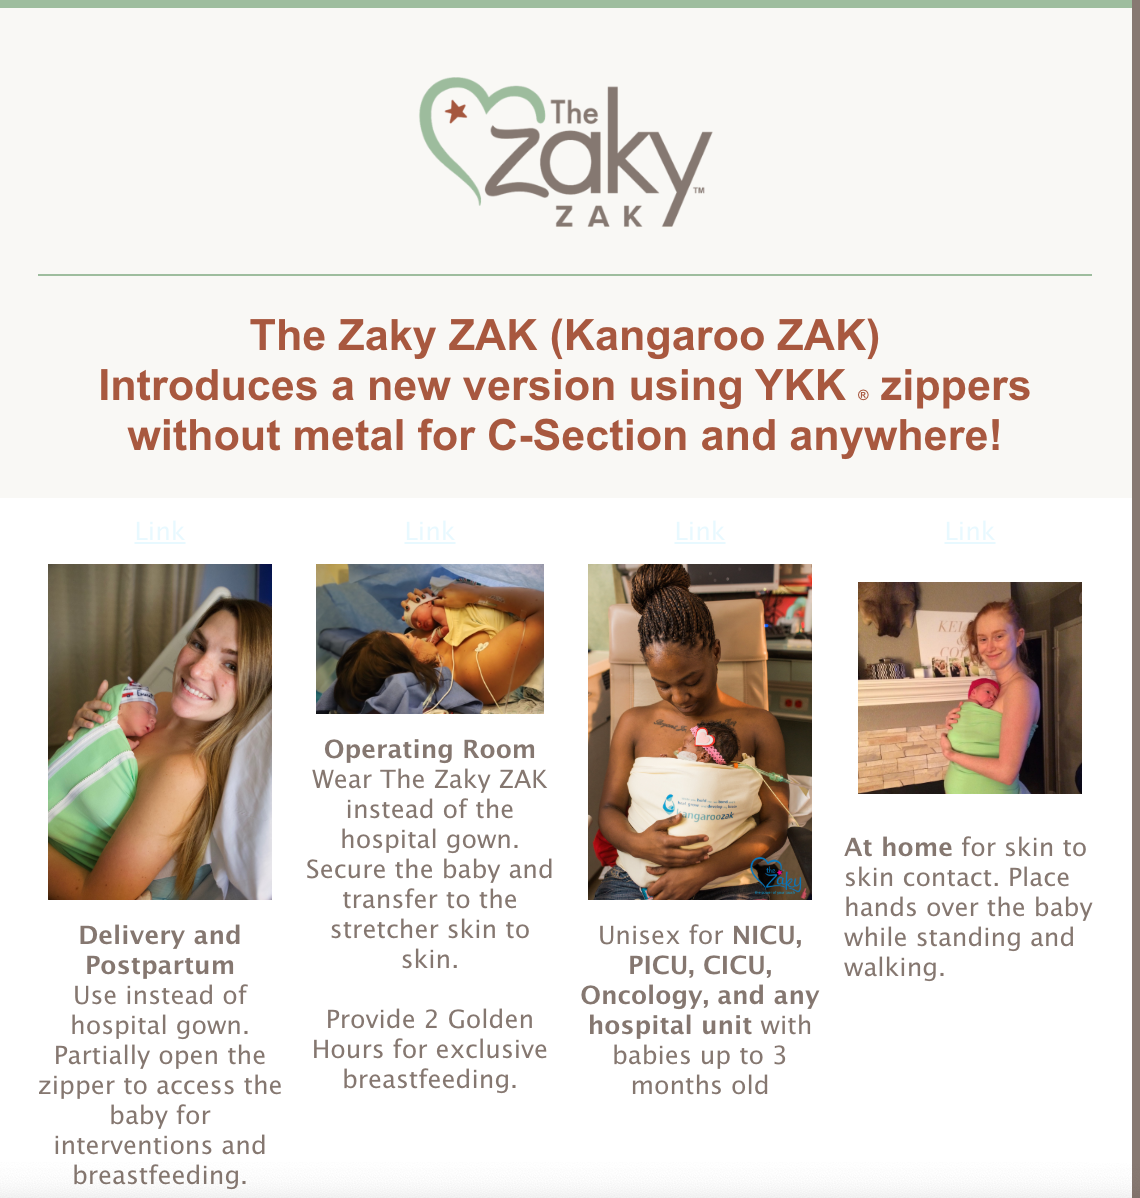 The Zaky ZAK new zipper announcement